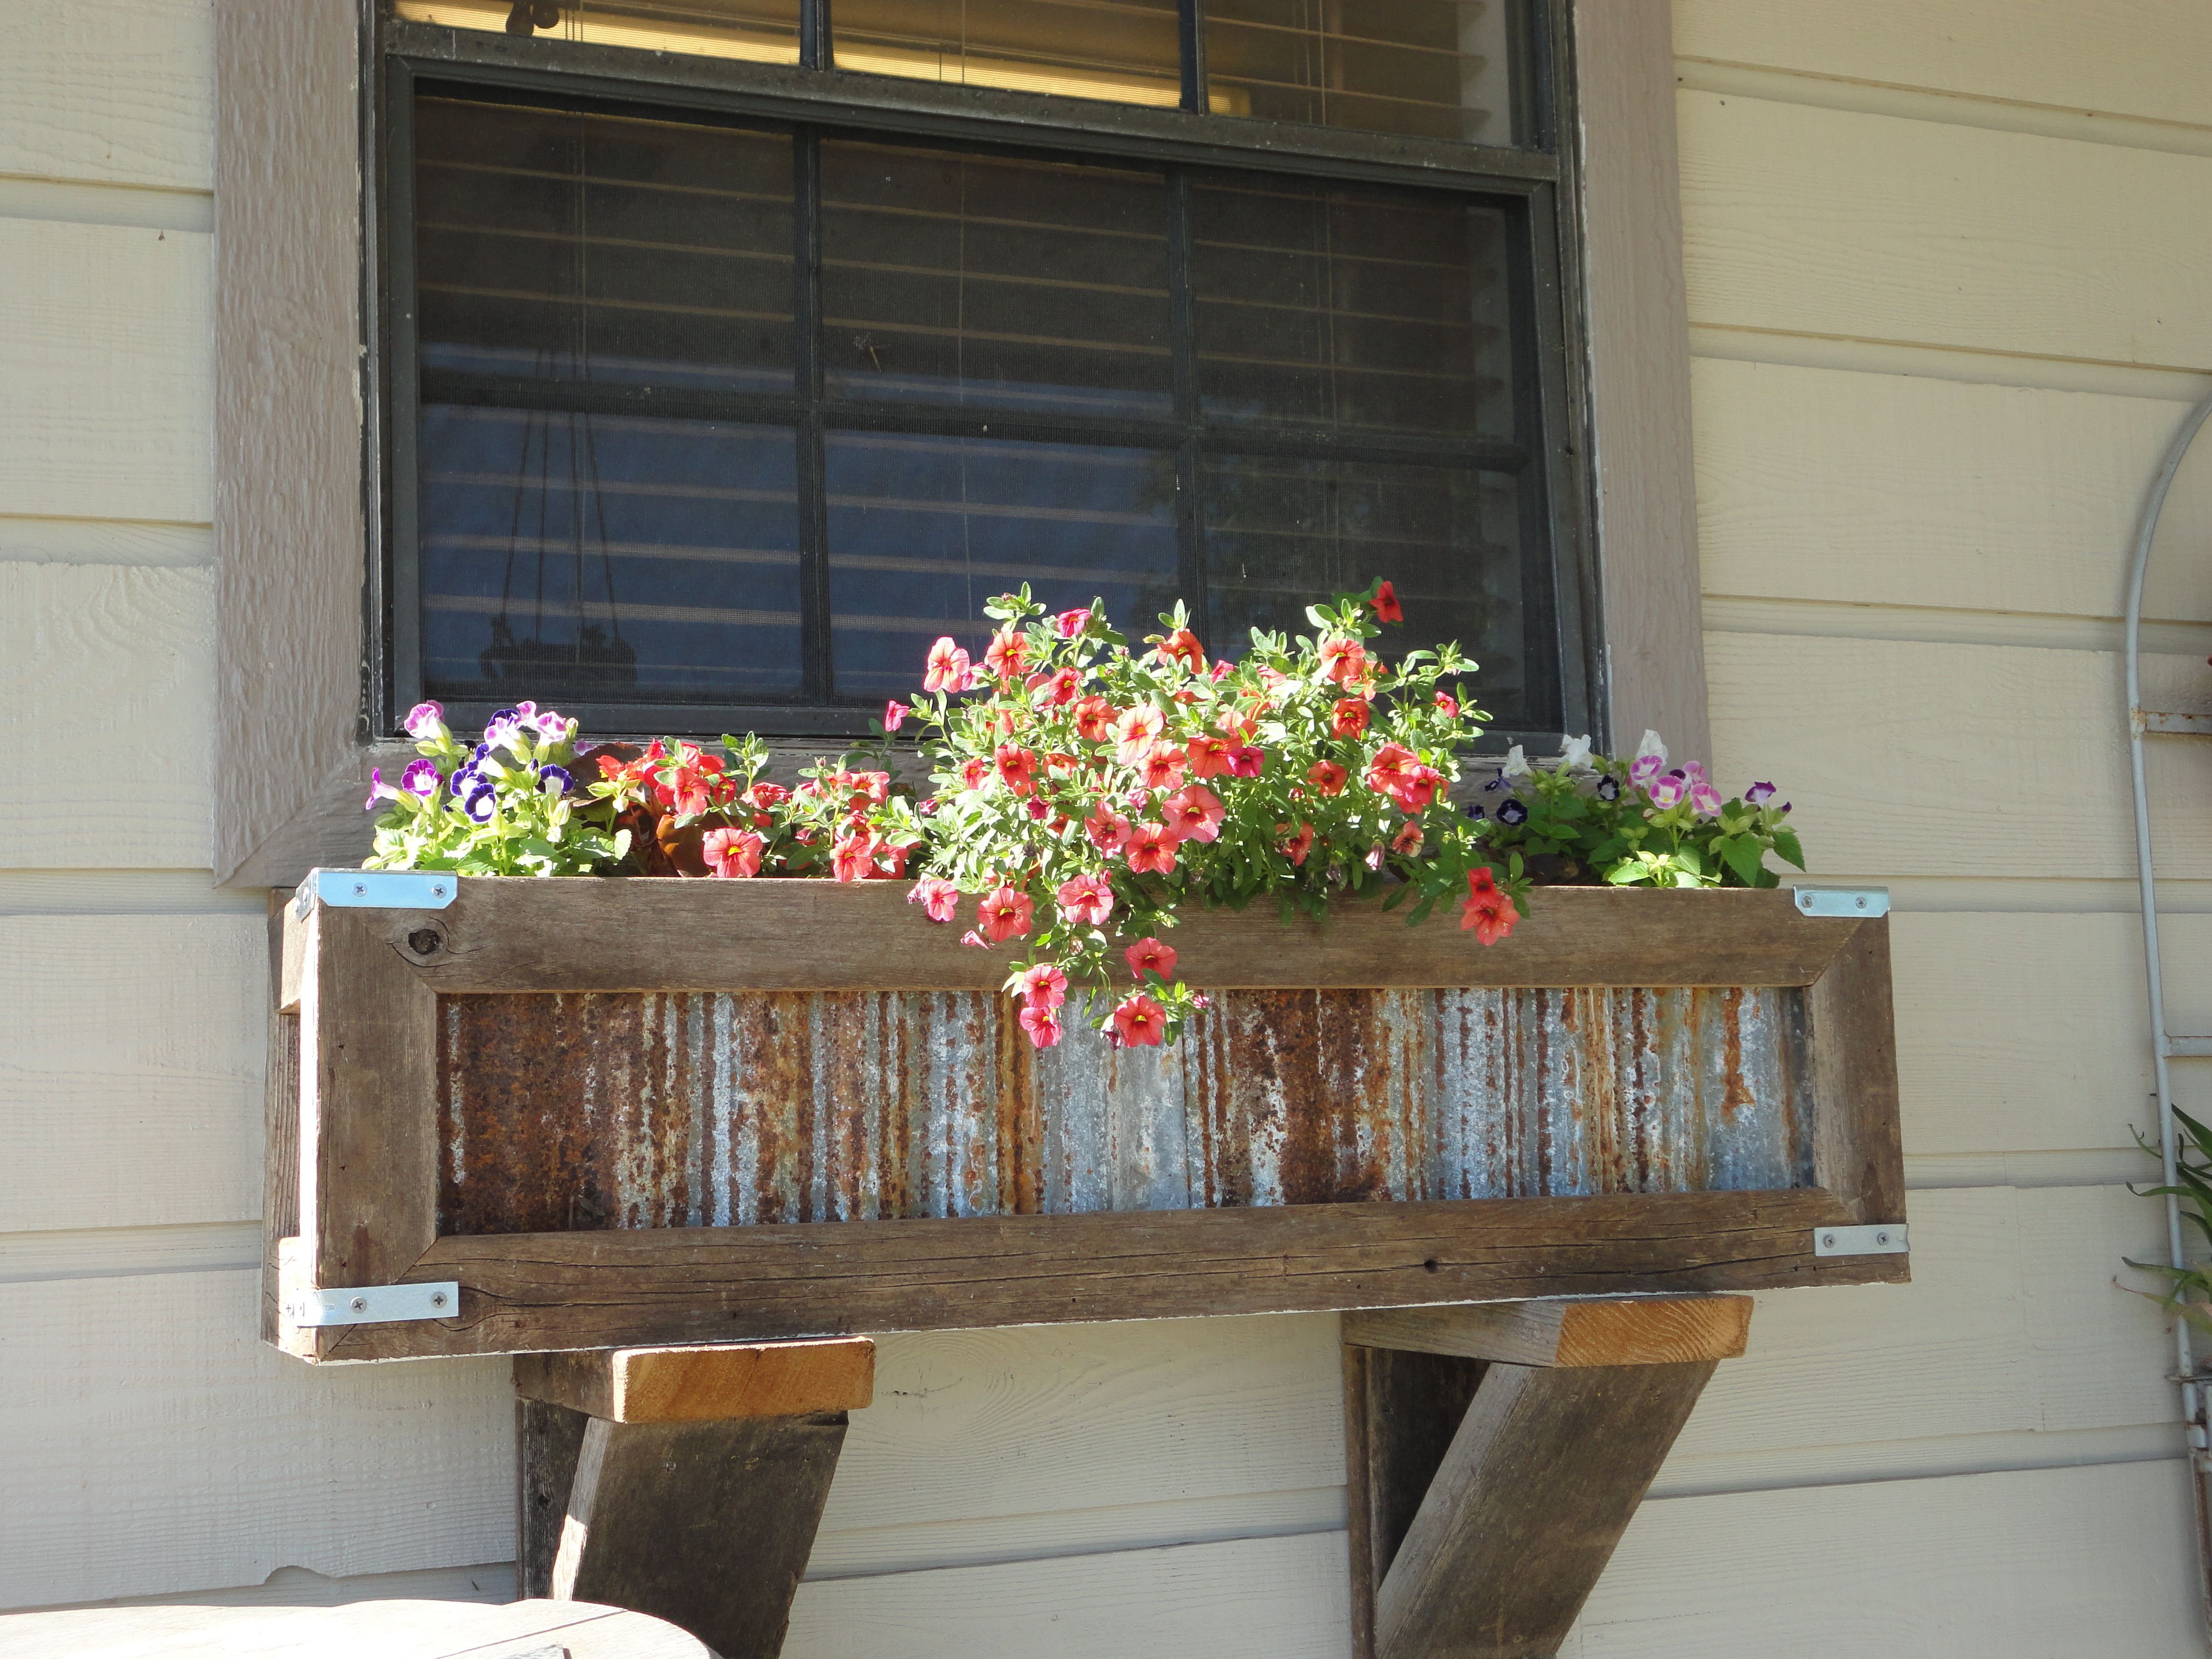 House box window design  handcrafted rustic window box planter for kitchen window crafted out